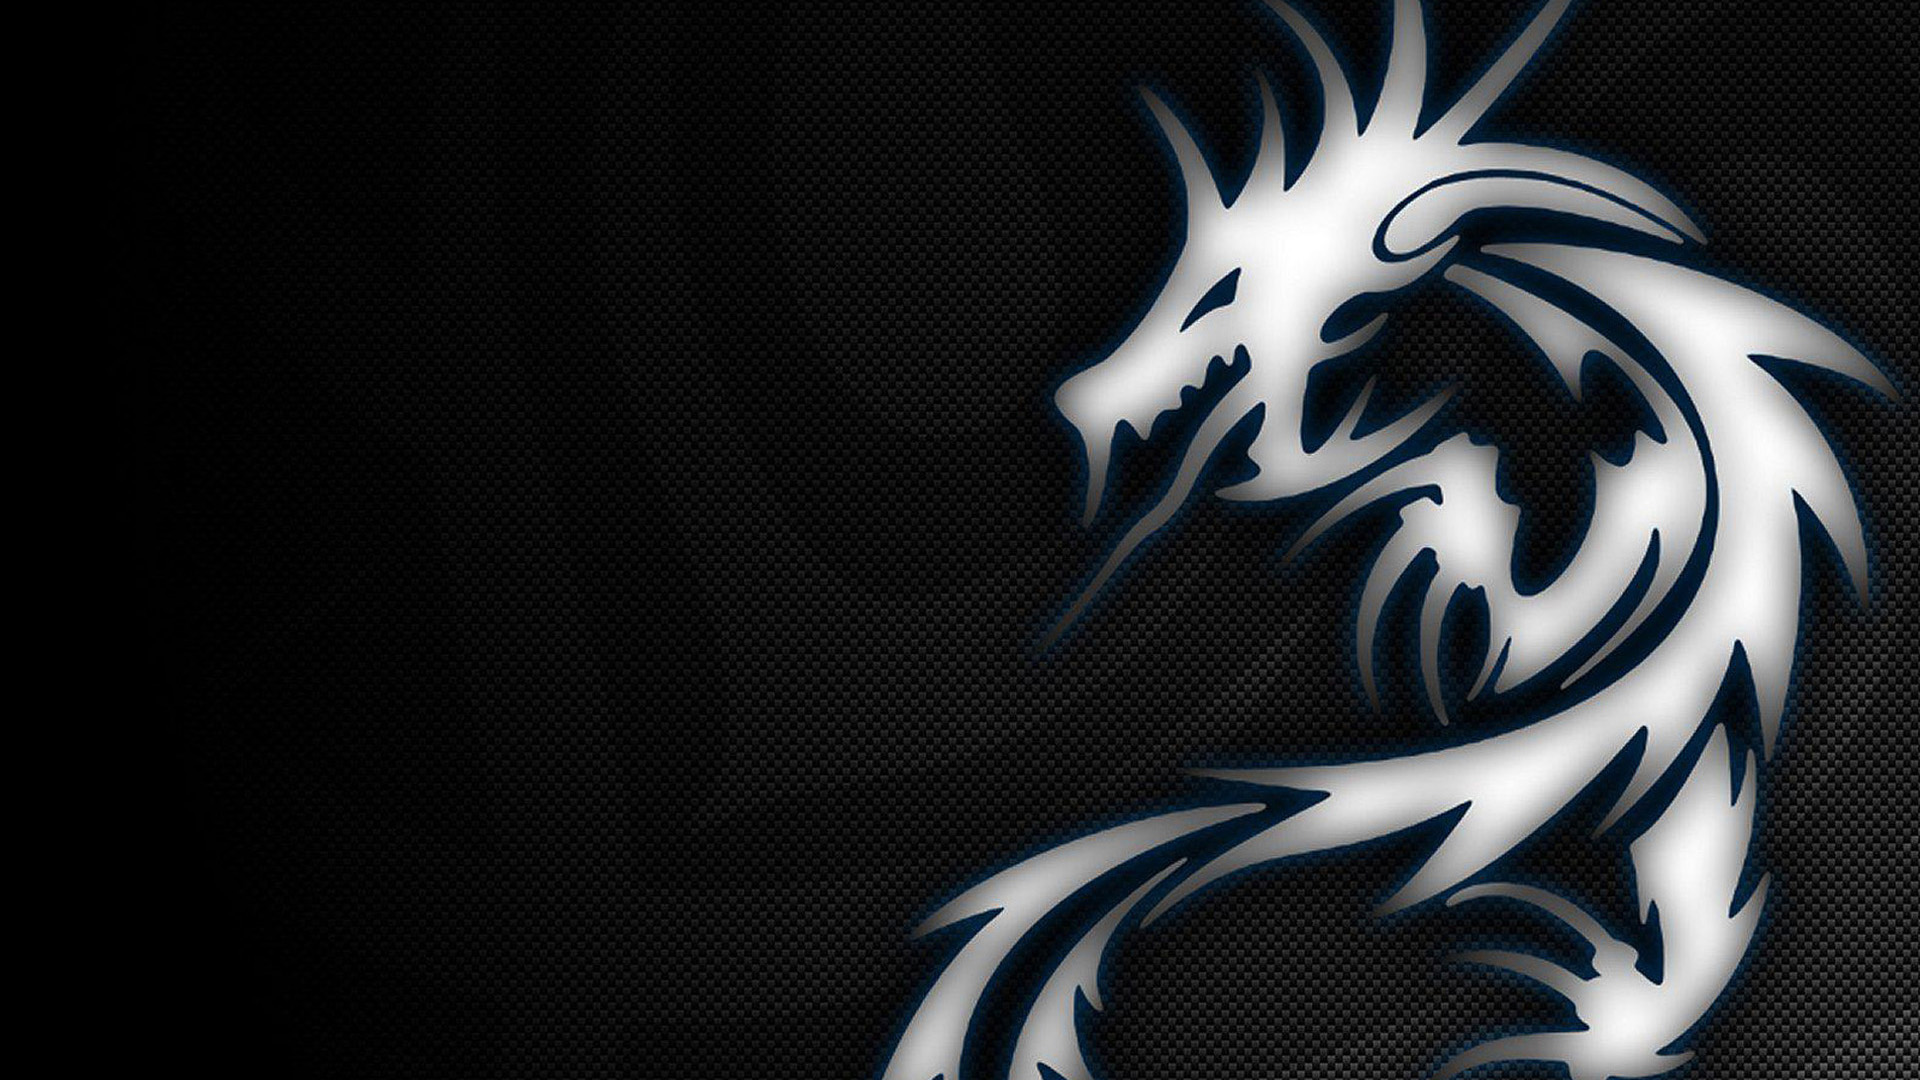 MSI Dragon Wallpaper HD  WallpaperSafari